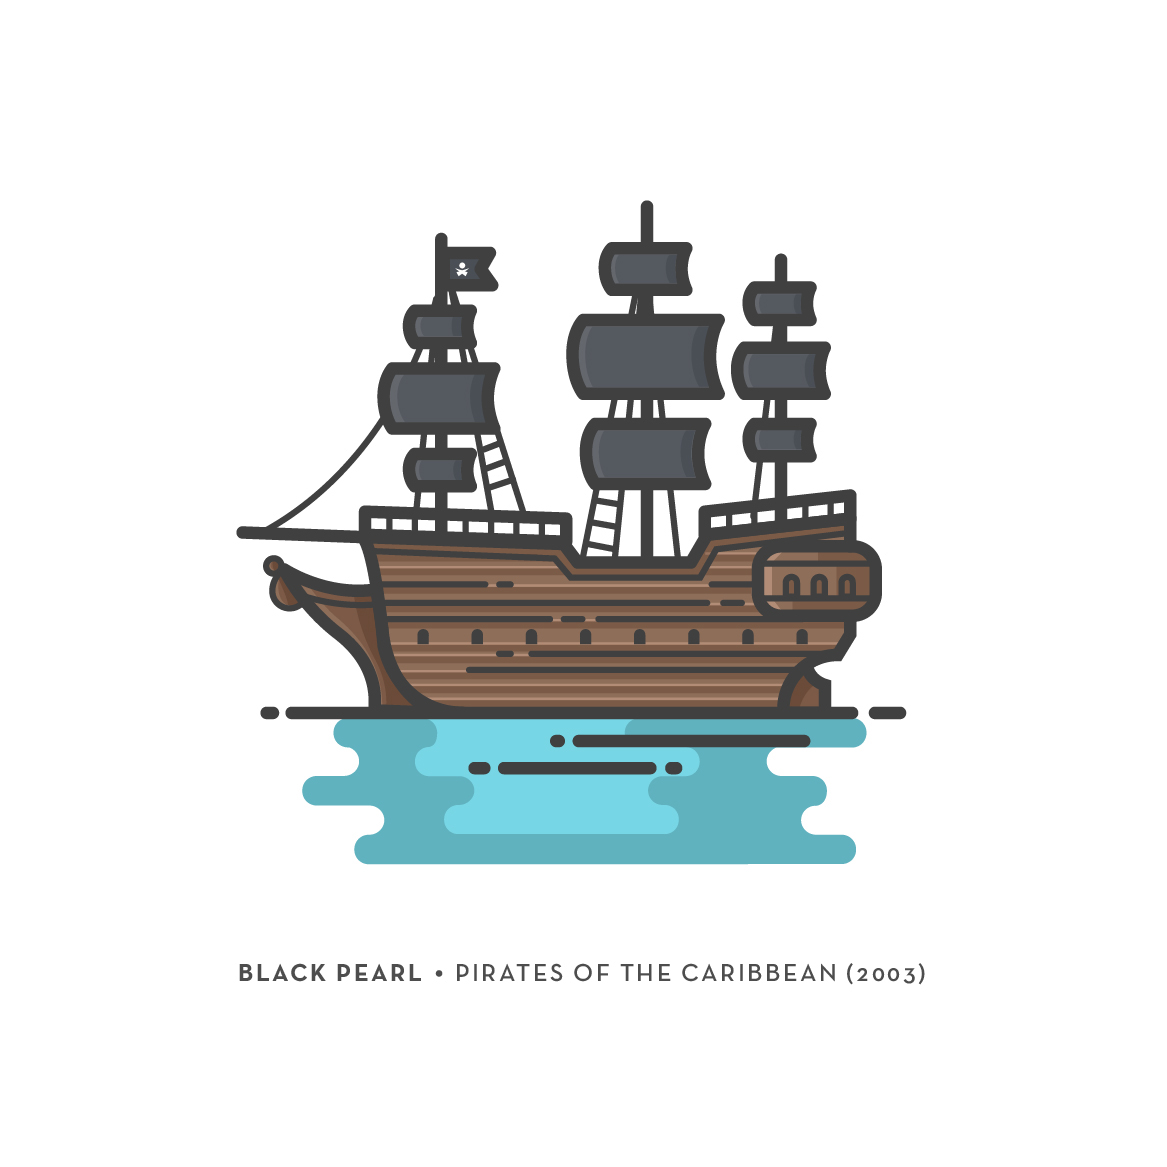 Pirate Ships Illustrations on Behance